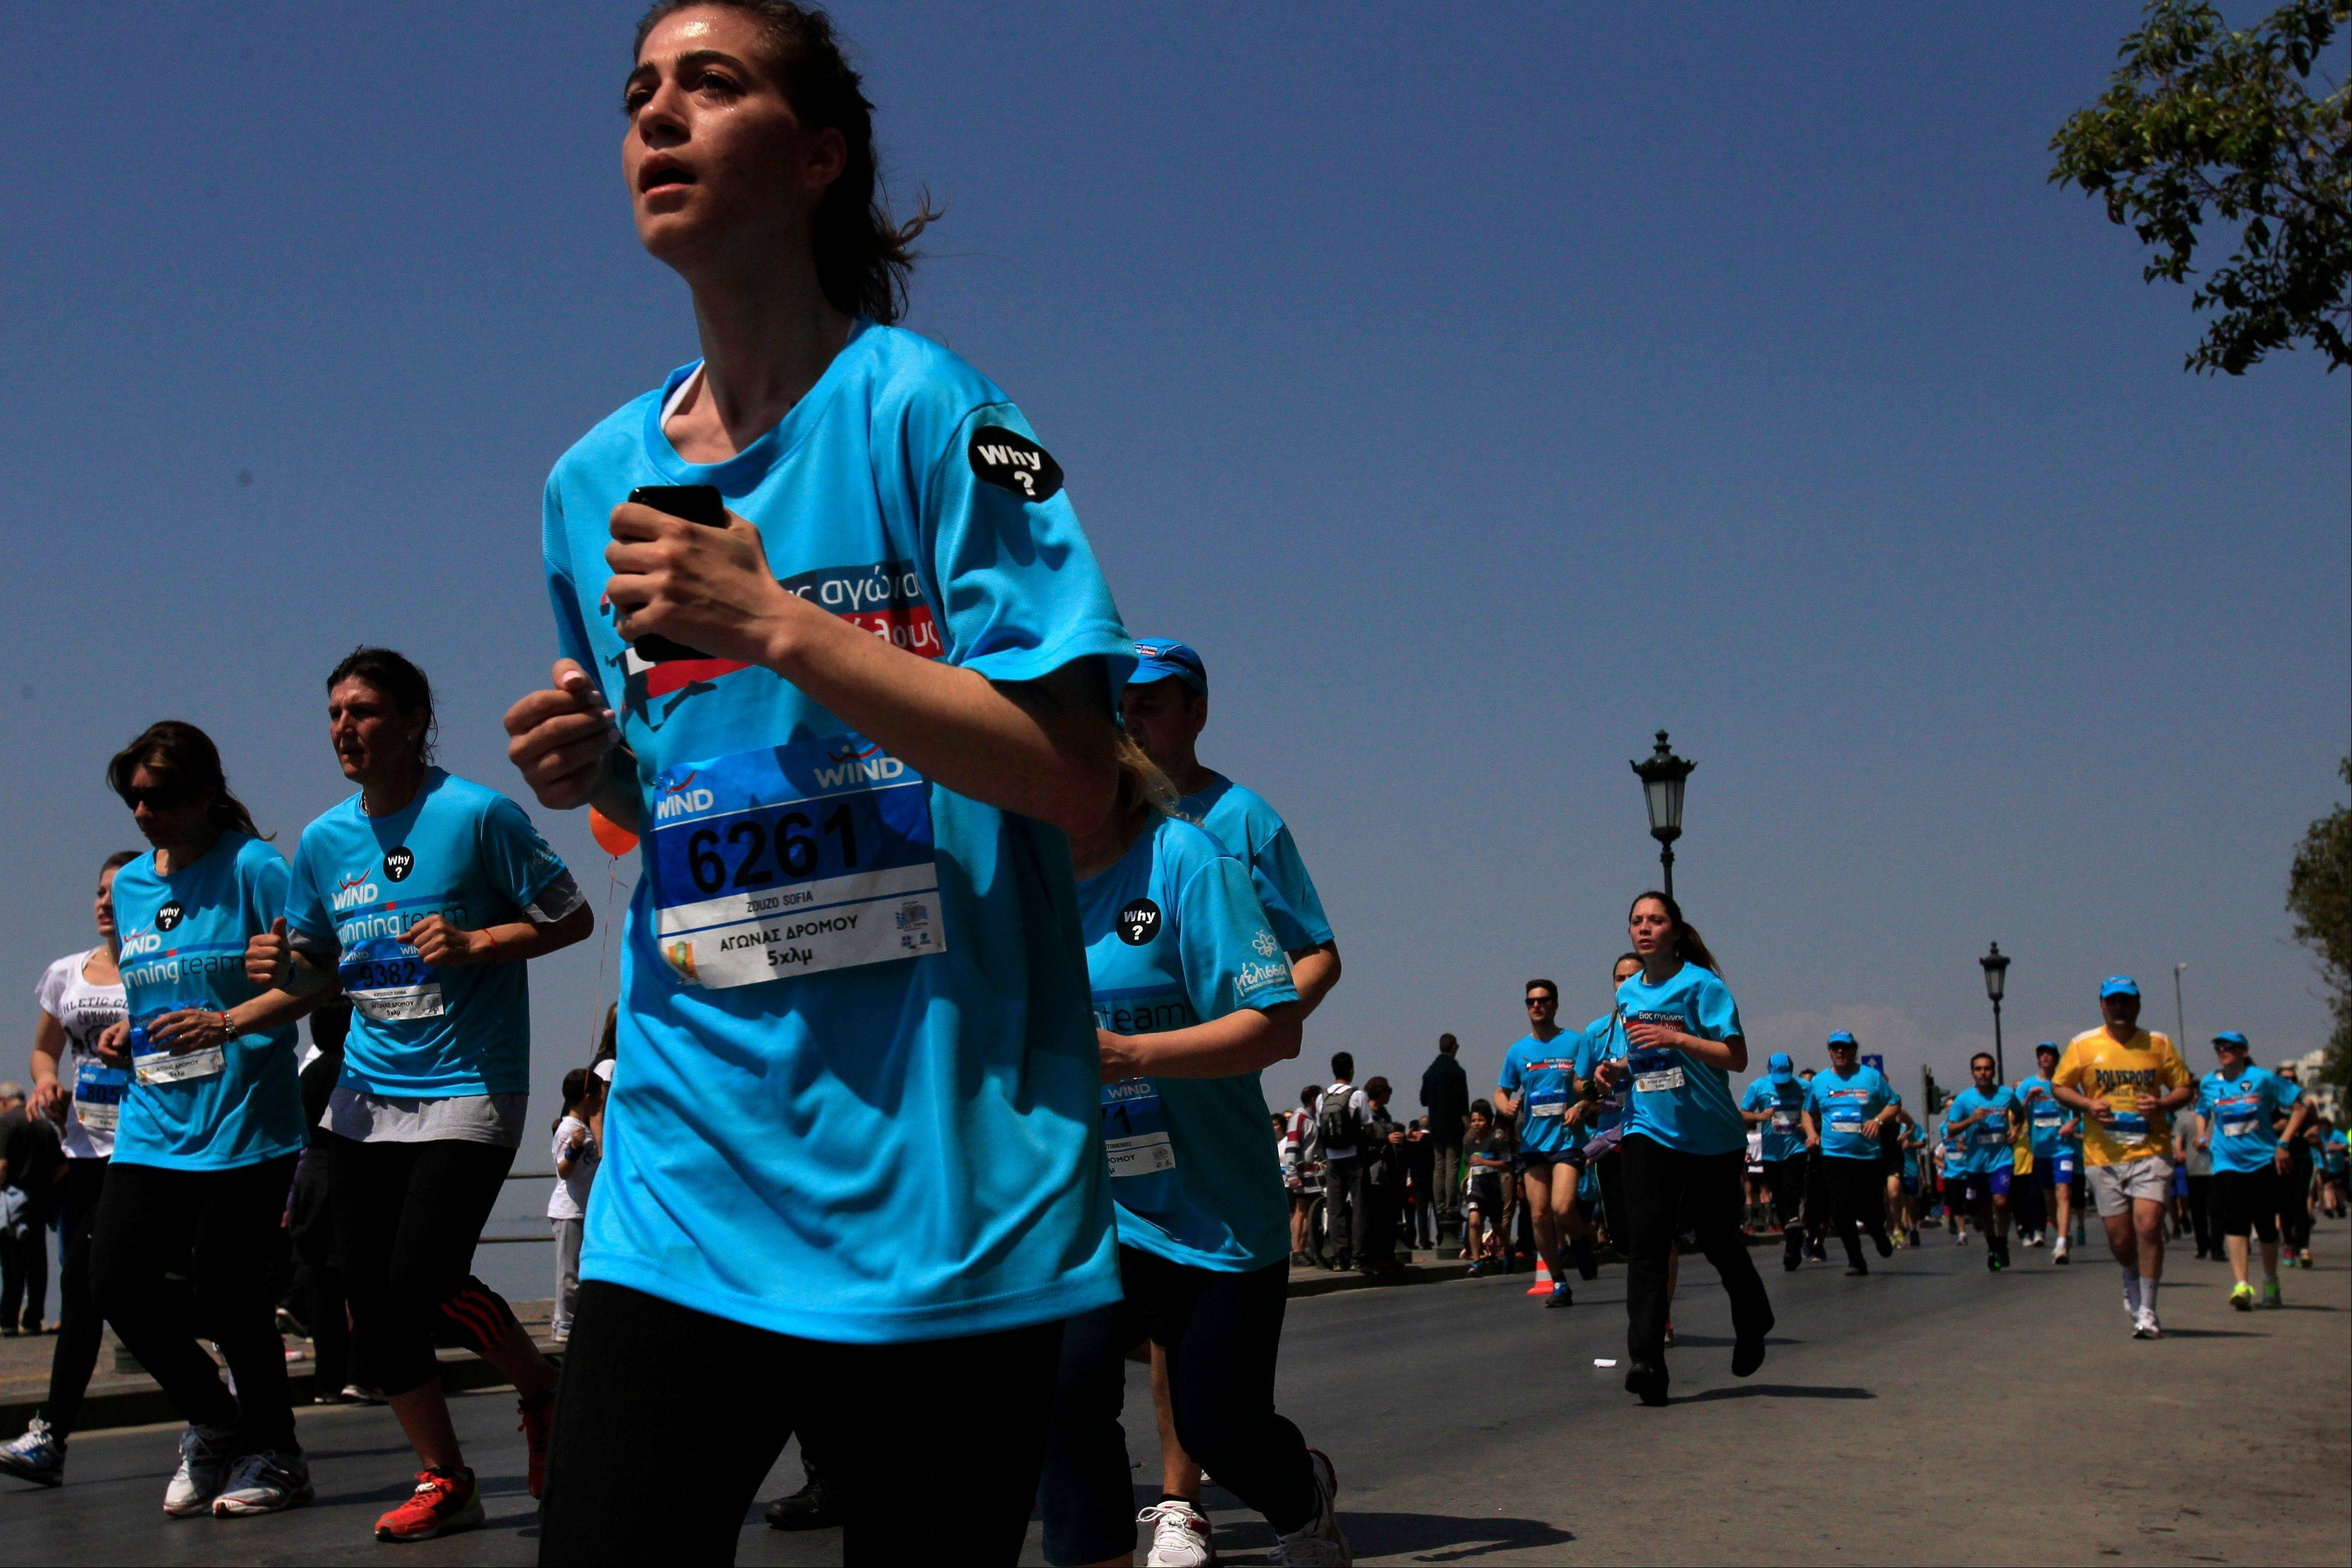 Athletes compete during in Sunday's Thessaloniki Marathon in Greece.